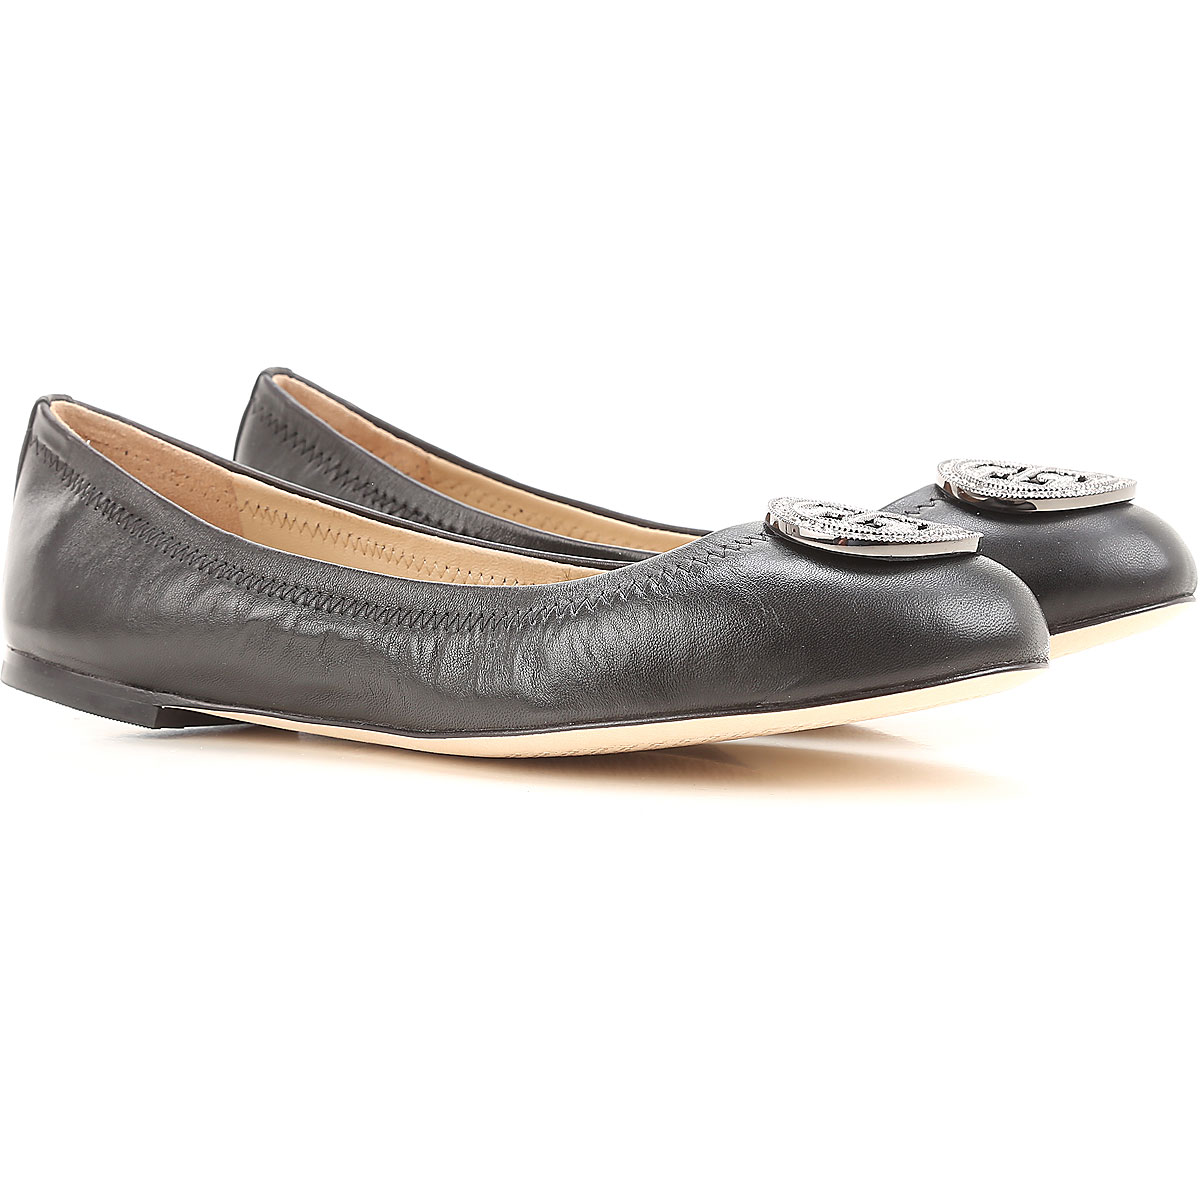 Tory Burch Ballet Flats Ballerina Shoes for Women On Sale in Outlet, Black, Leather, 2019, 6.5 9 9.5